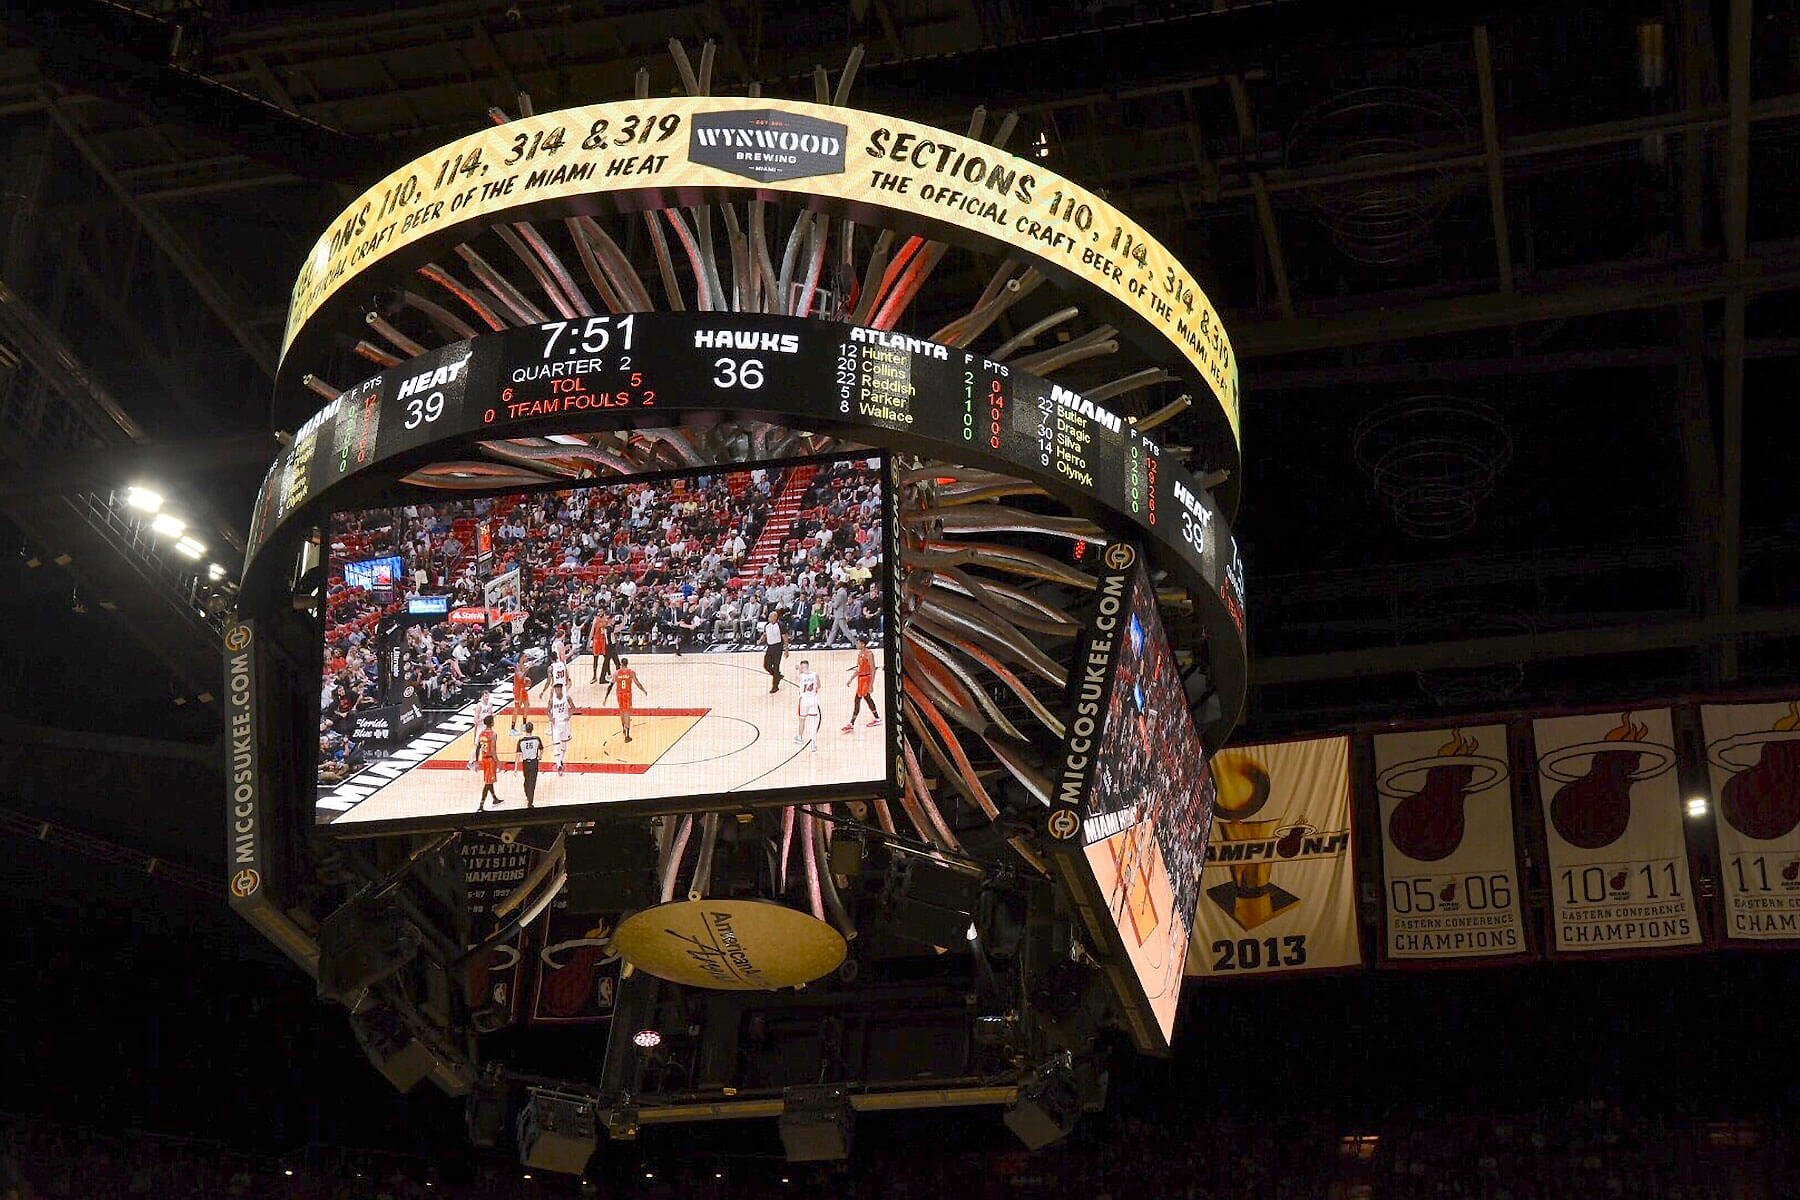 Miami HEAT fans can enjoy Wynwood Brewing beers from beer carts at AmericanAirlines Arena sections 110, 114, 314, and 319.